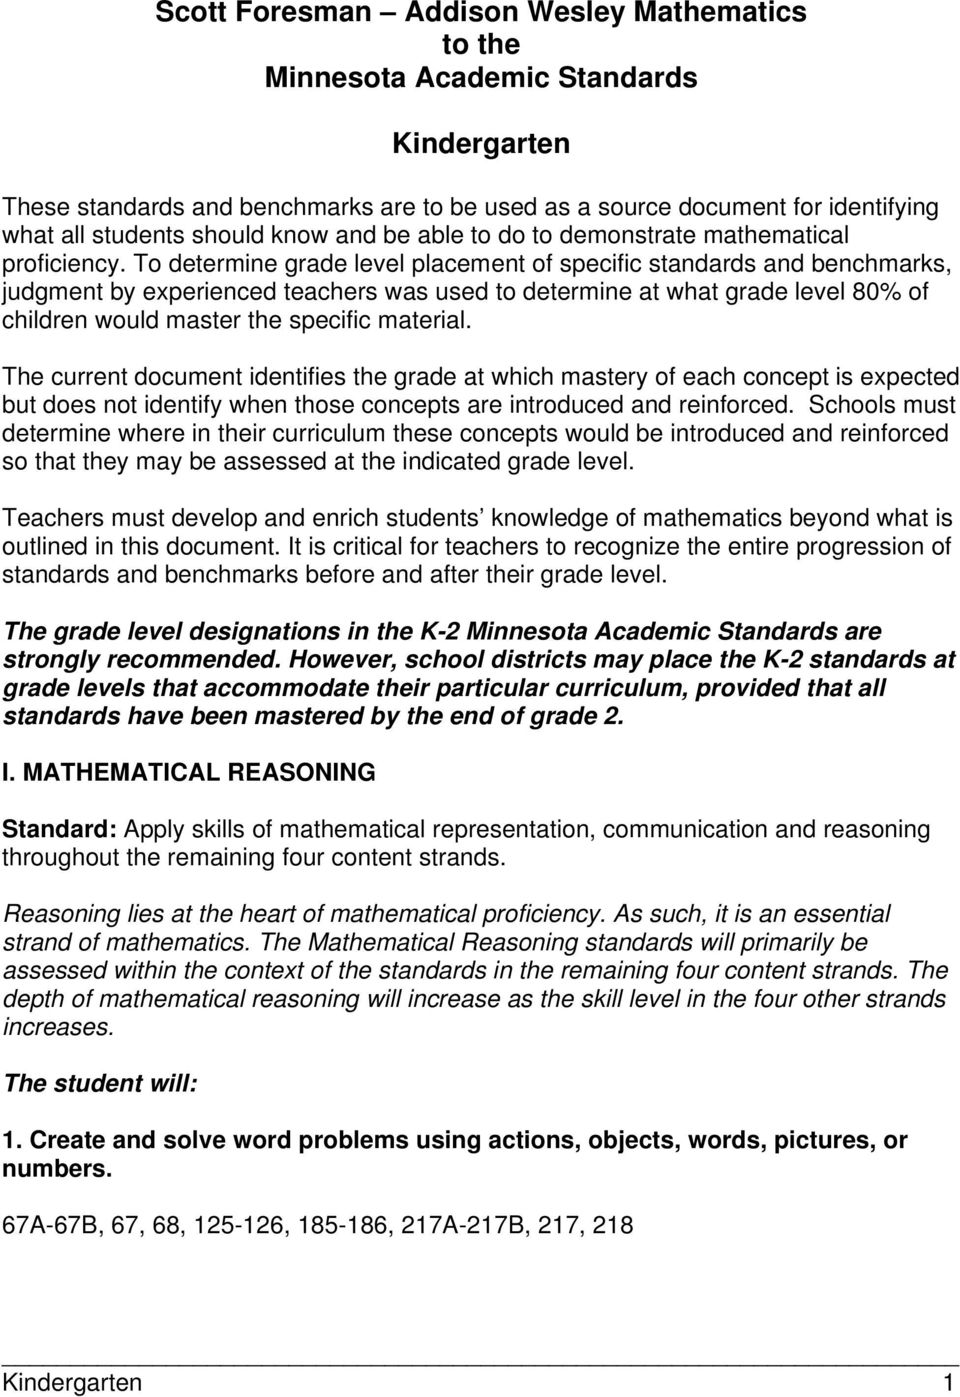 The current document identifies the grade at which mastery of each concept is expected but does not identify when those concepts are introduced and reinforced.